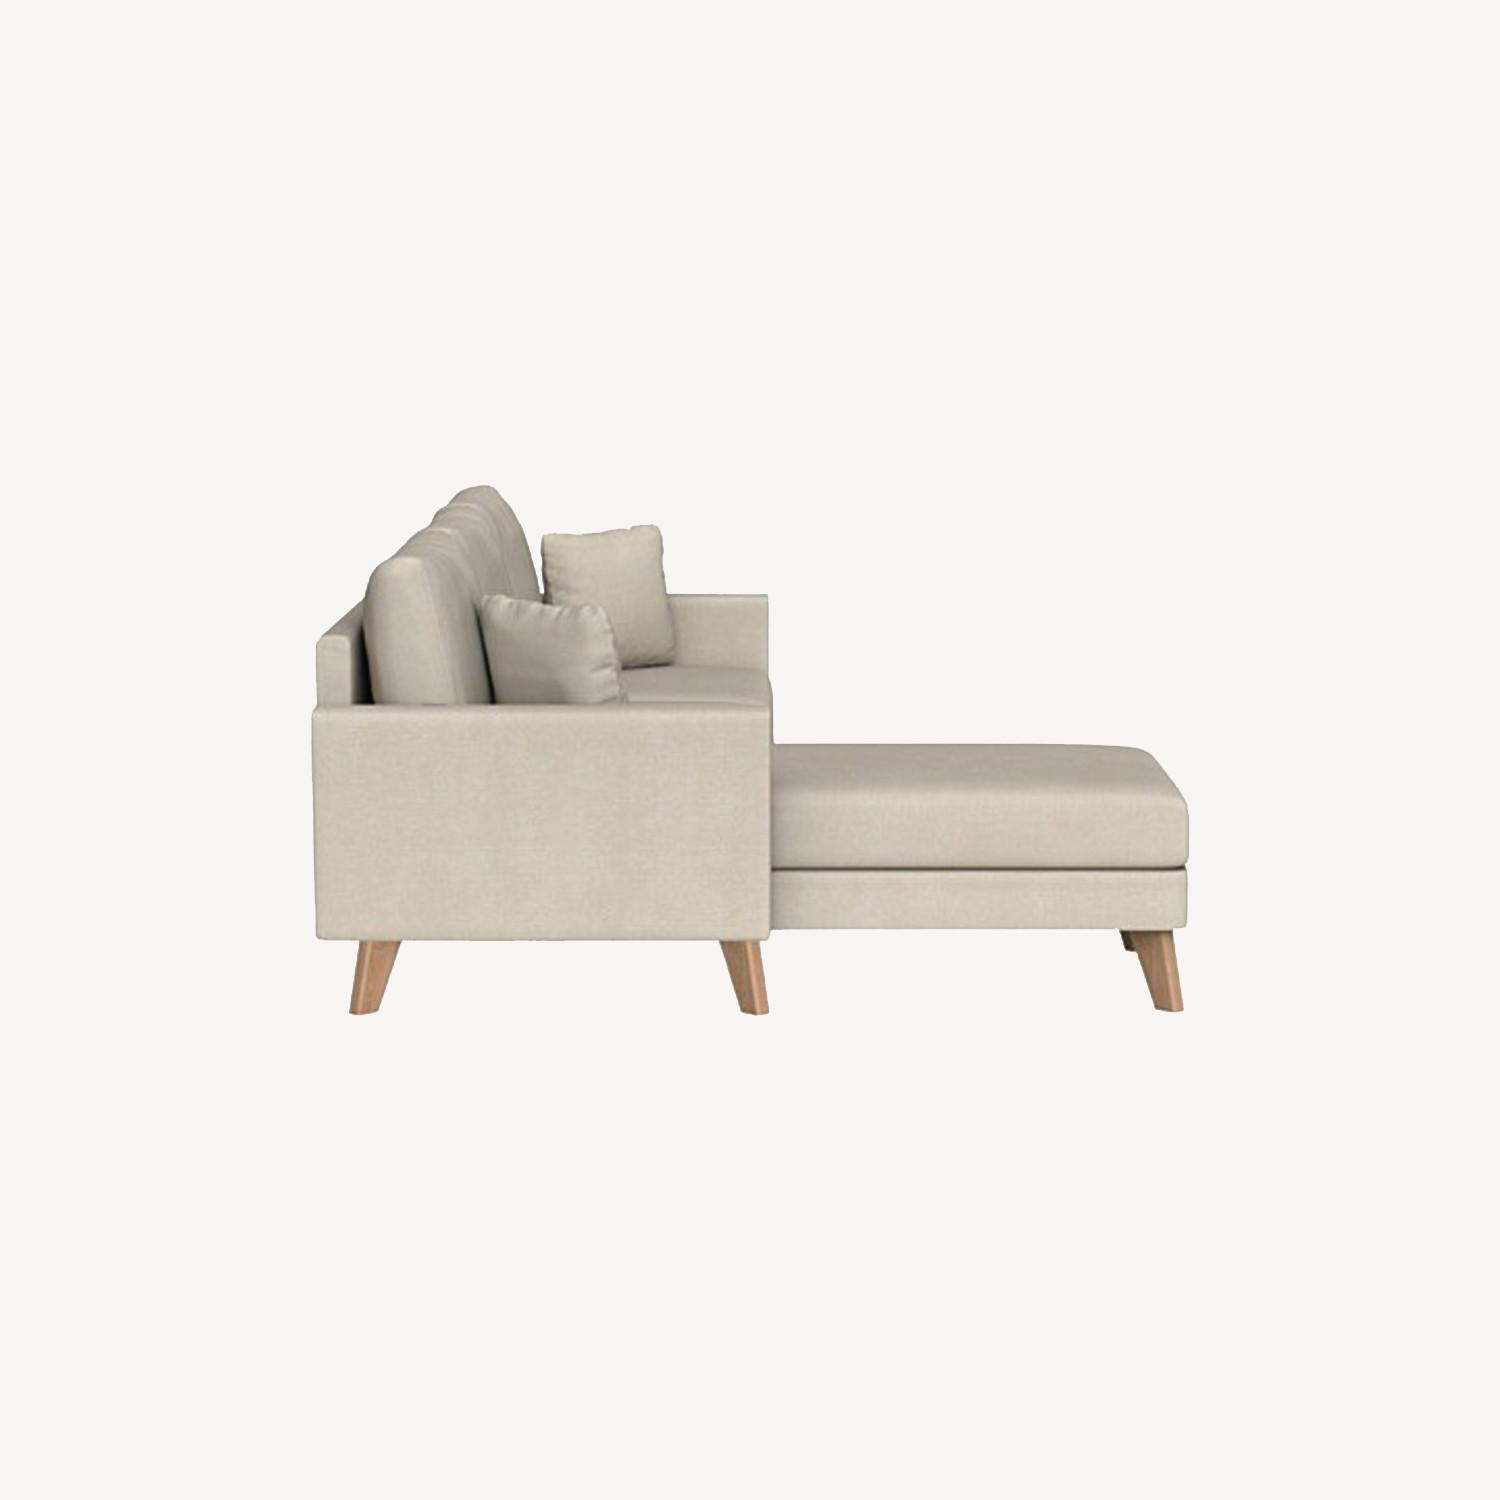 Inside Weather Custom Milo Sectional in Almond - image-0